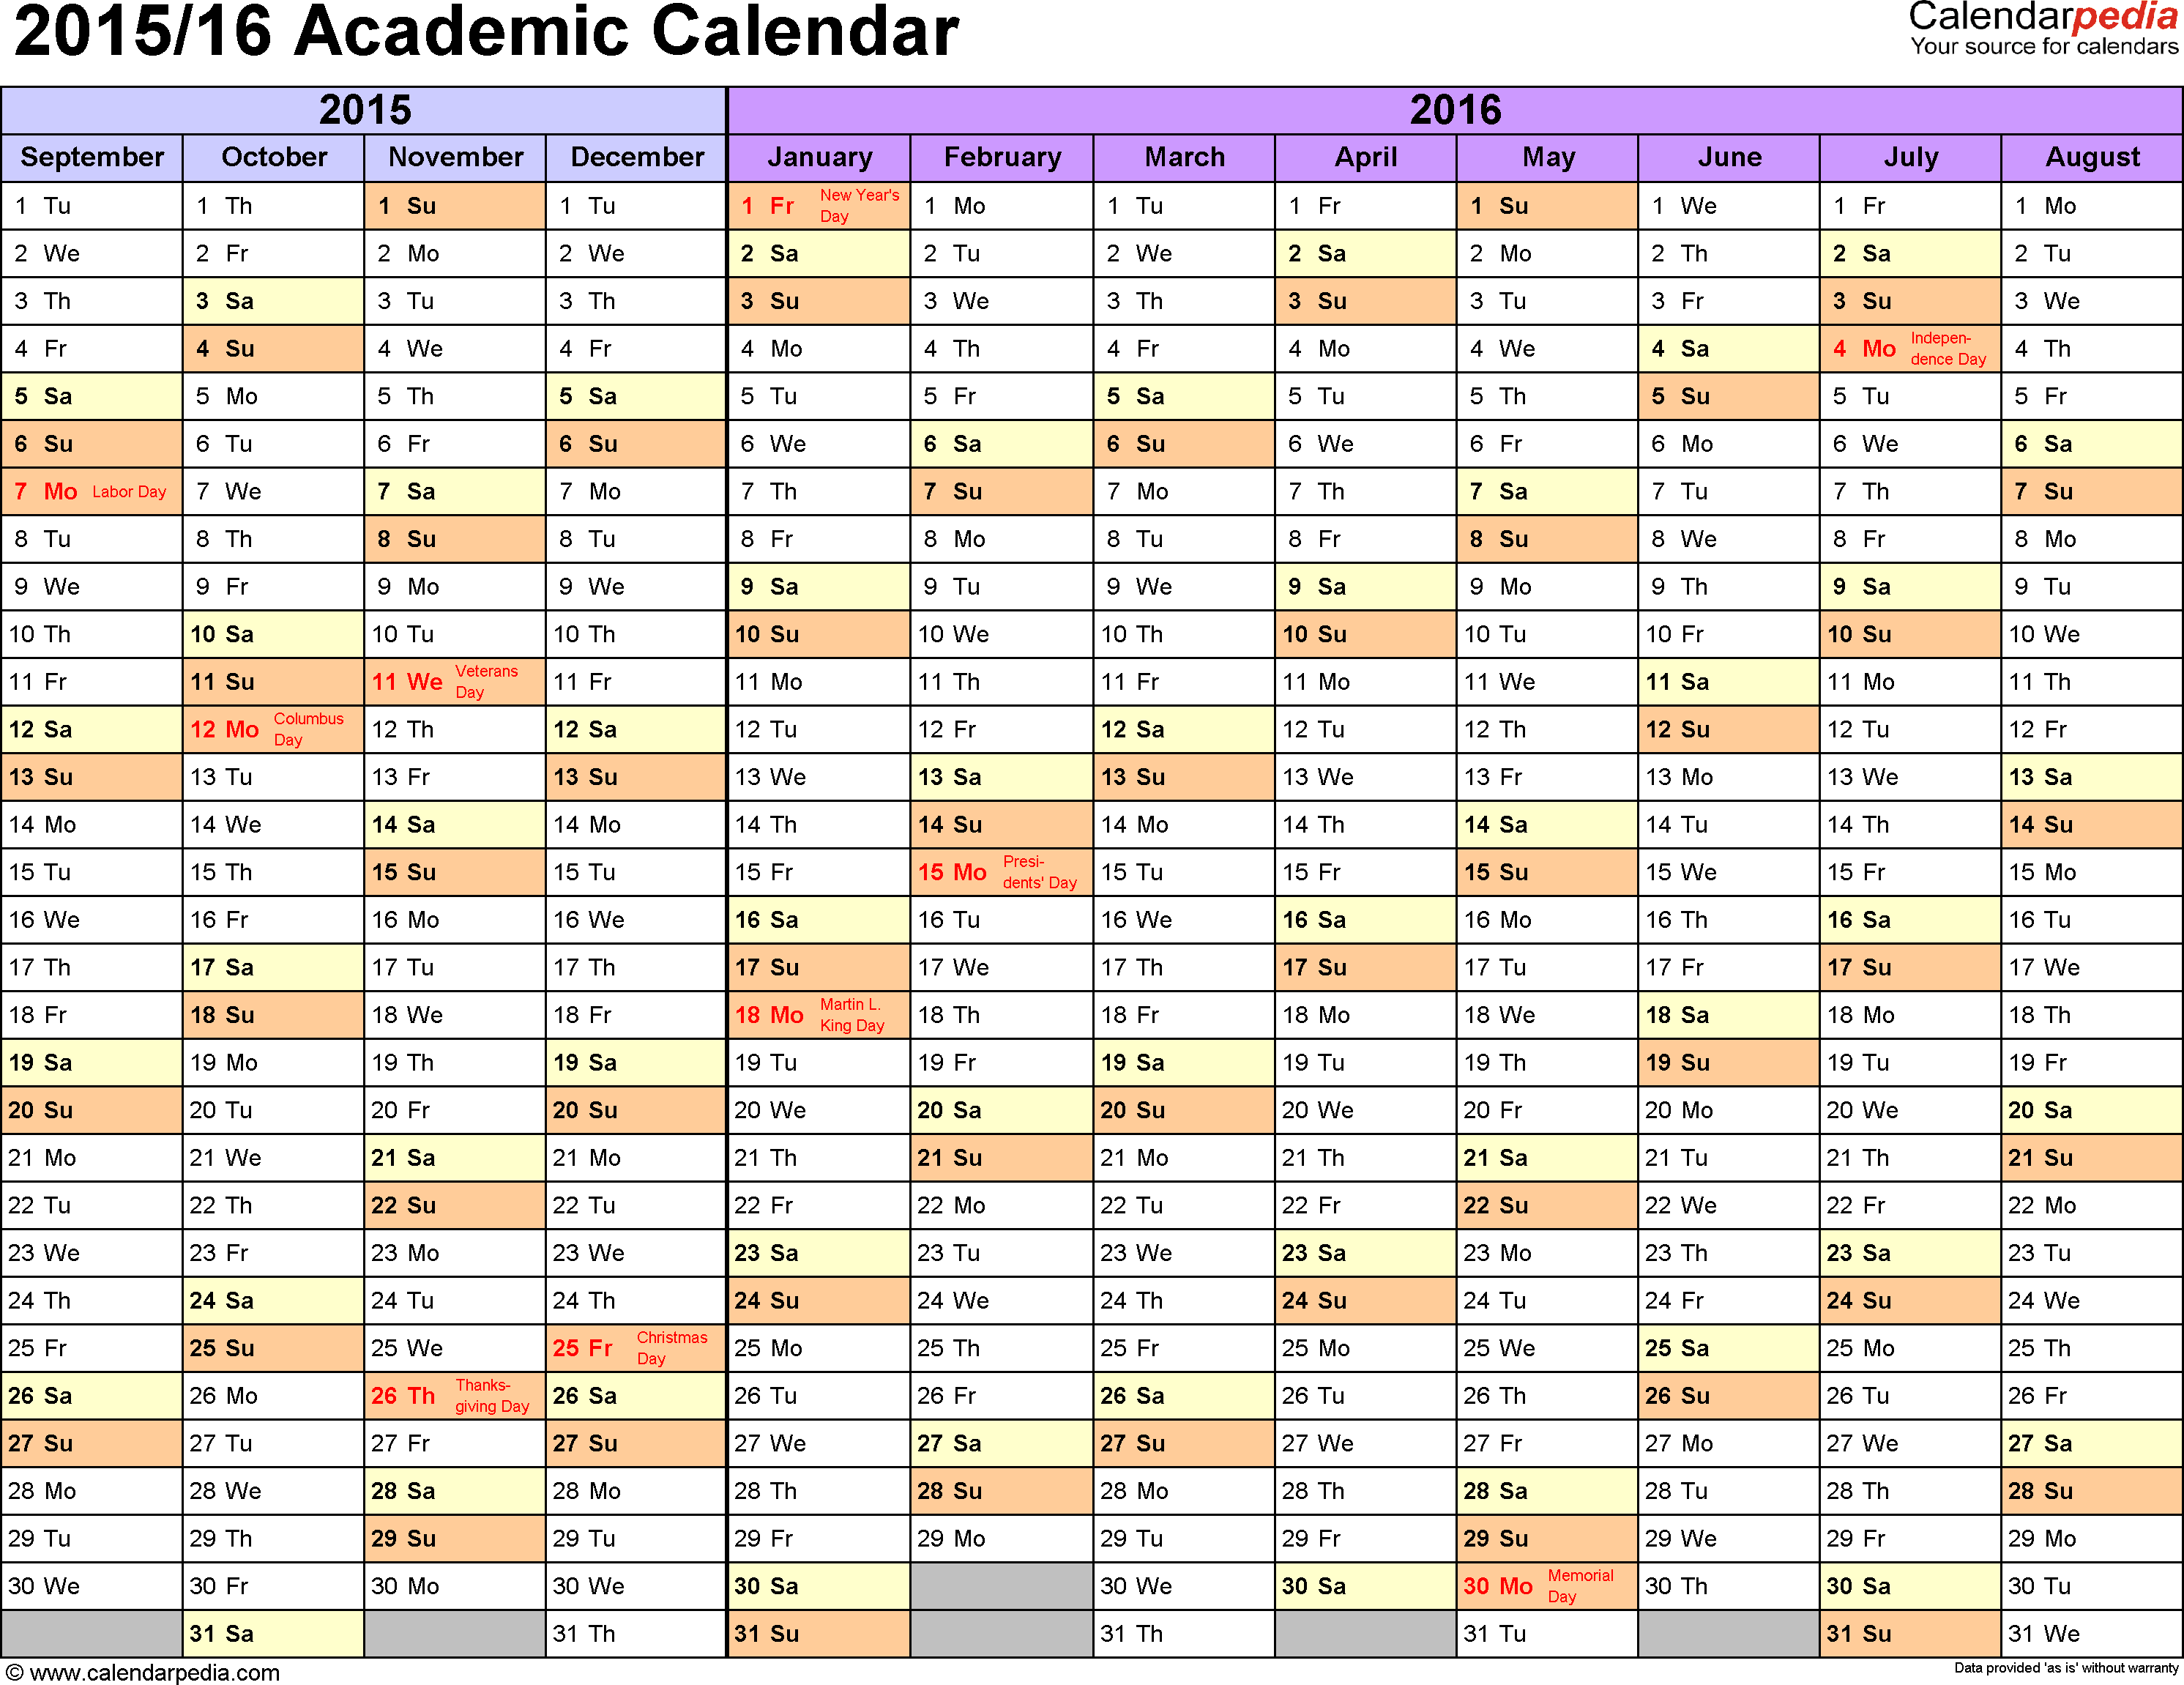 Template 1: Academic calendar 2015/16 for Excel, landscape orientation, months horizontally, 1 page